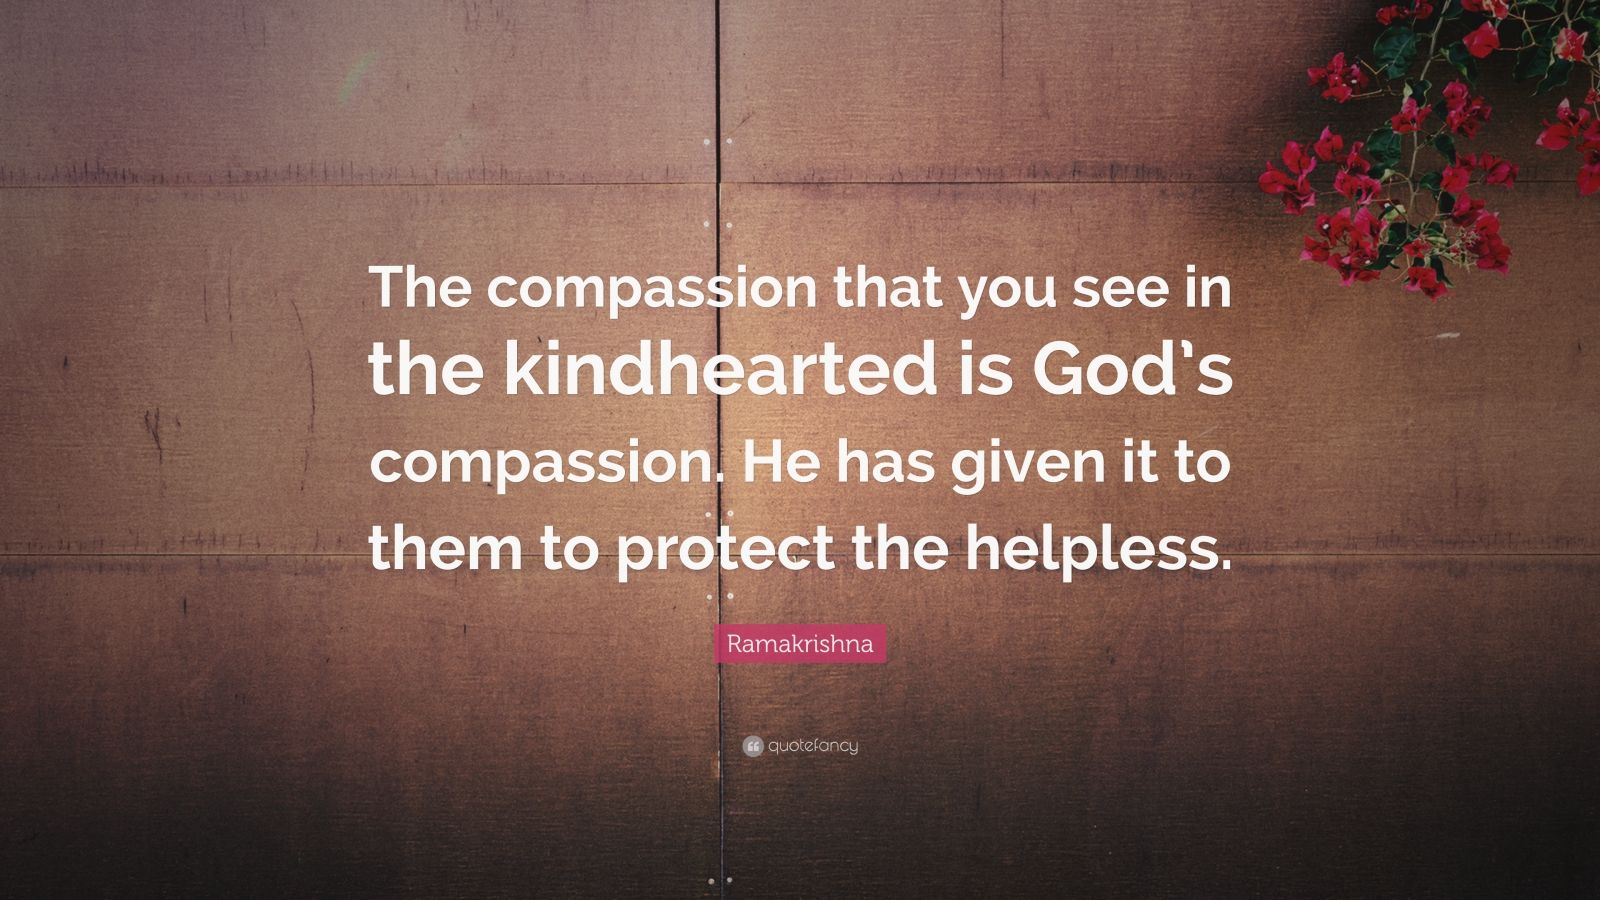 """Ramakrishna Quote: """"The compassion that you see in the kindhearted is God's compassion. He has given it to them to protect the helpless."""""""